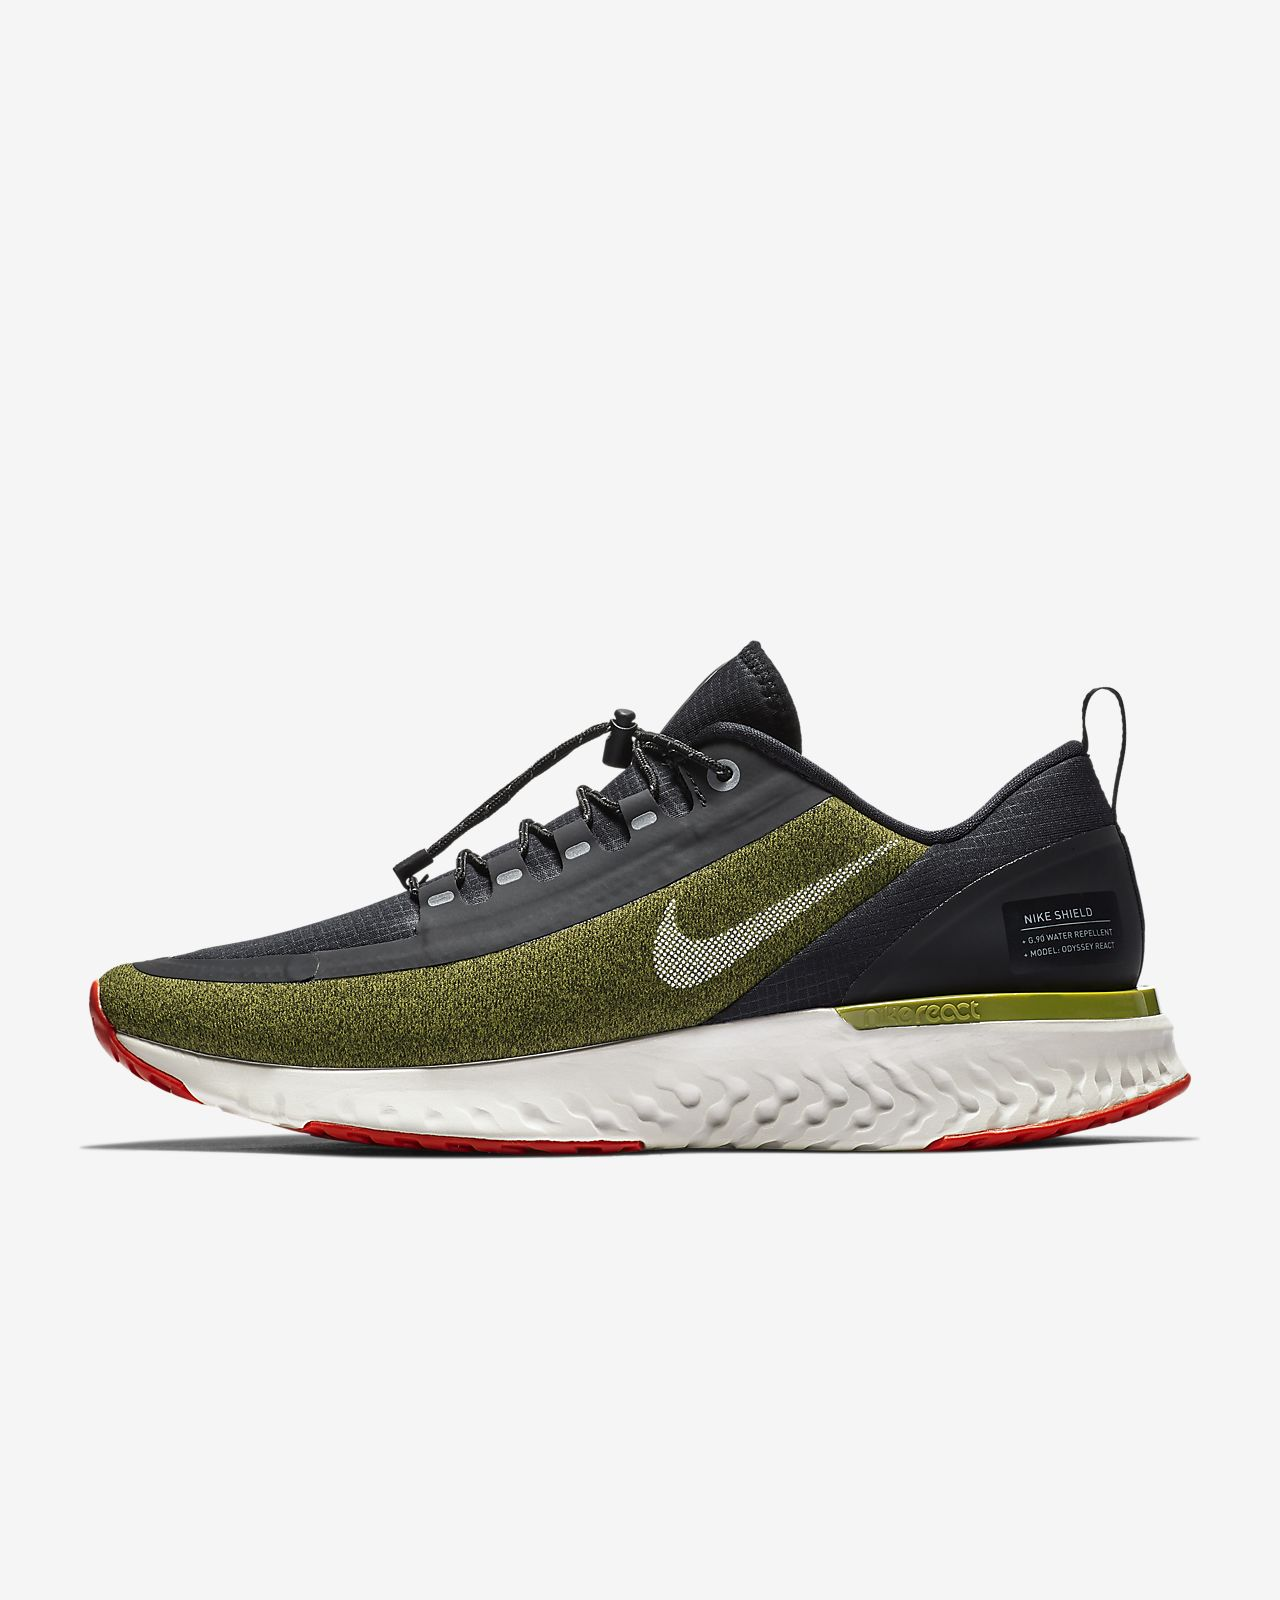 Chaussure de running Nike Odyssey React Shield Water Repellent pour Homme